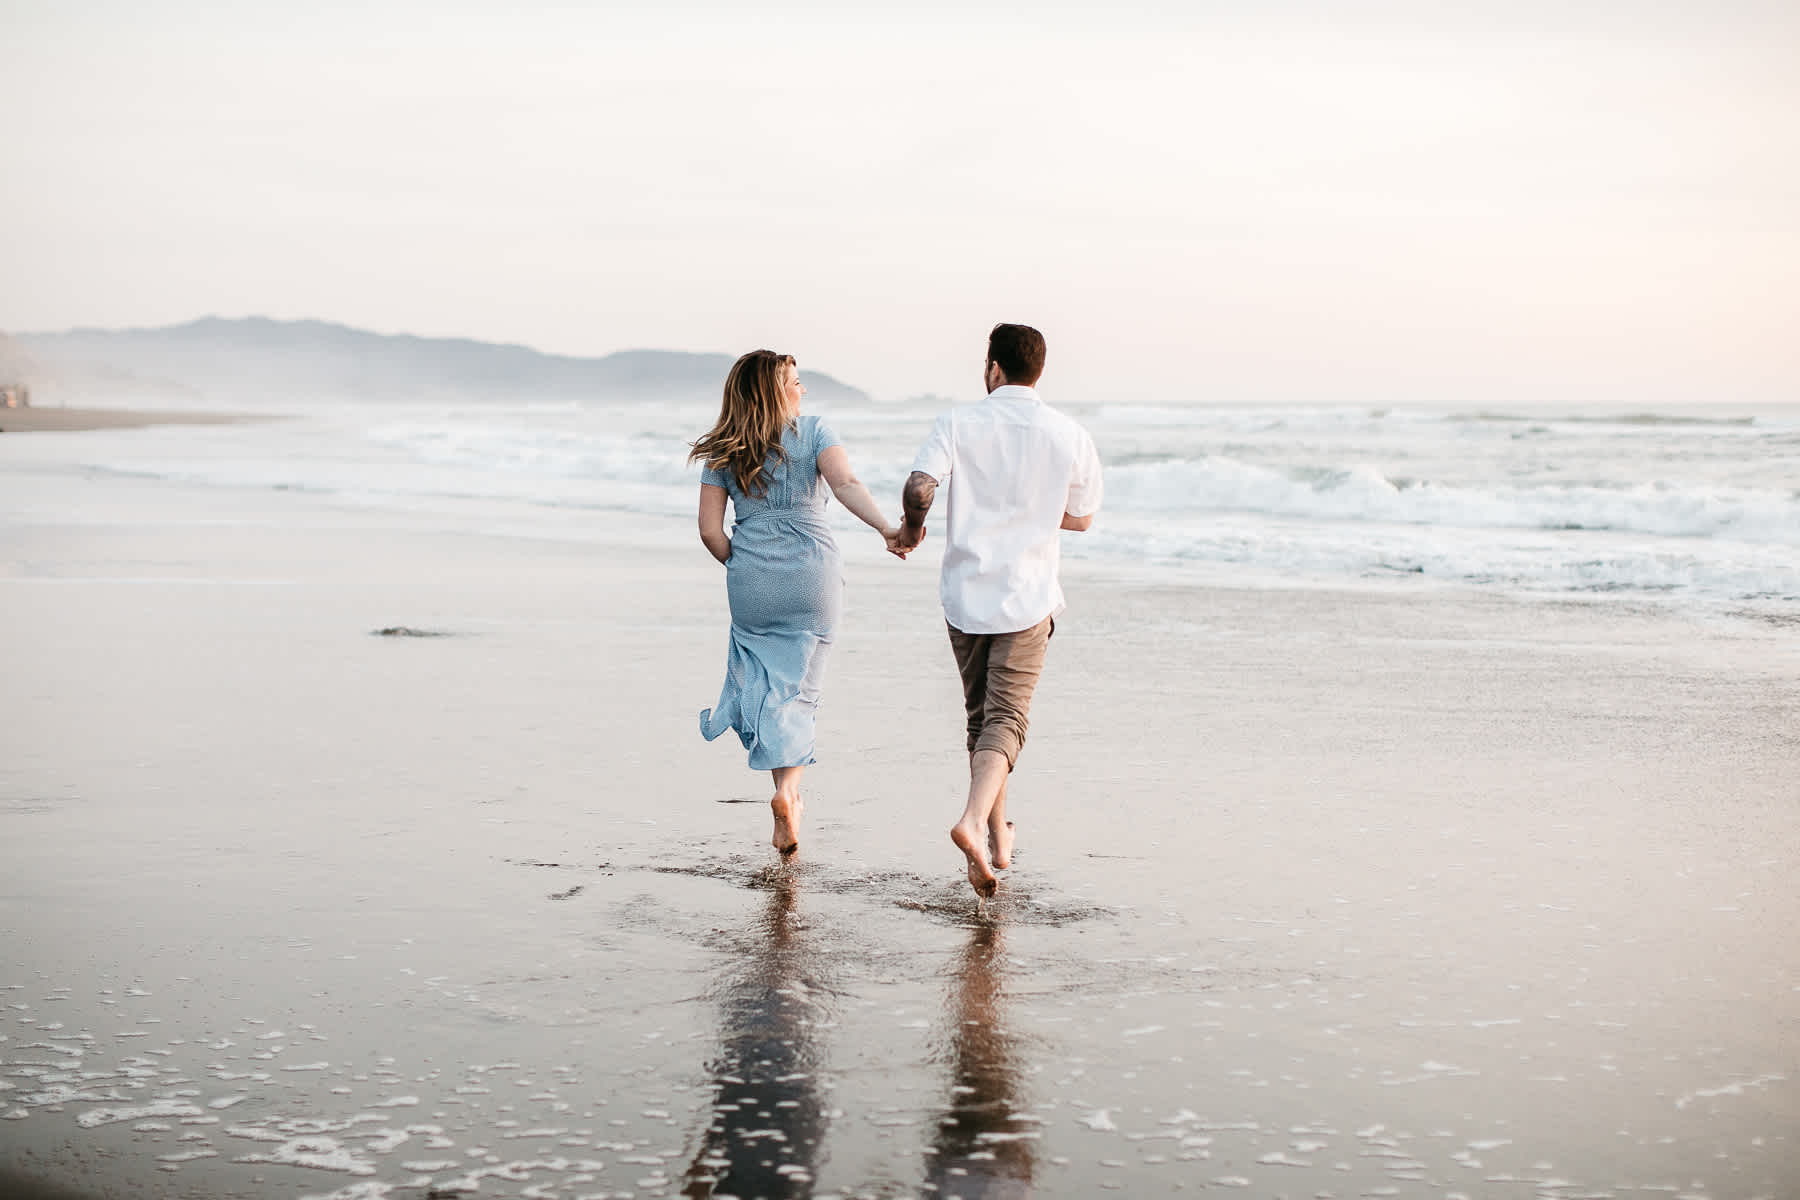 fort-funston-engagement-session-sunset-fun-beach-session-53